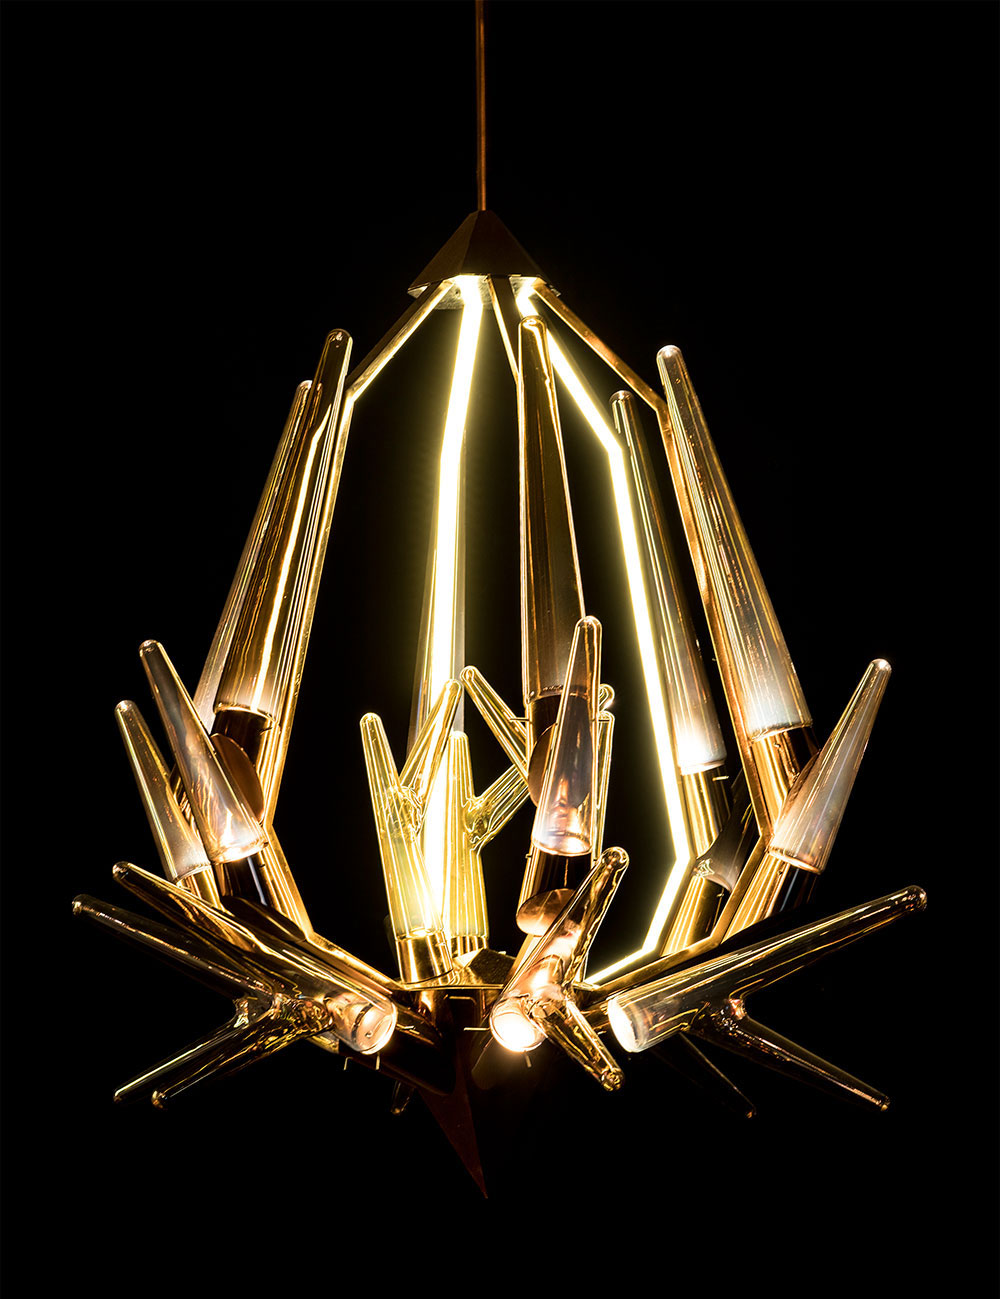 The Stag chandelier by New Delhi-based Klove Studio, inspired by the Nordic Antelope - hand crafted in glass.